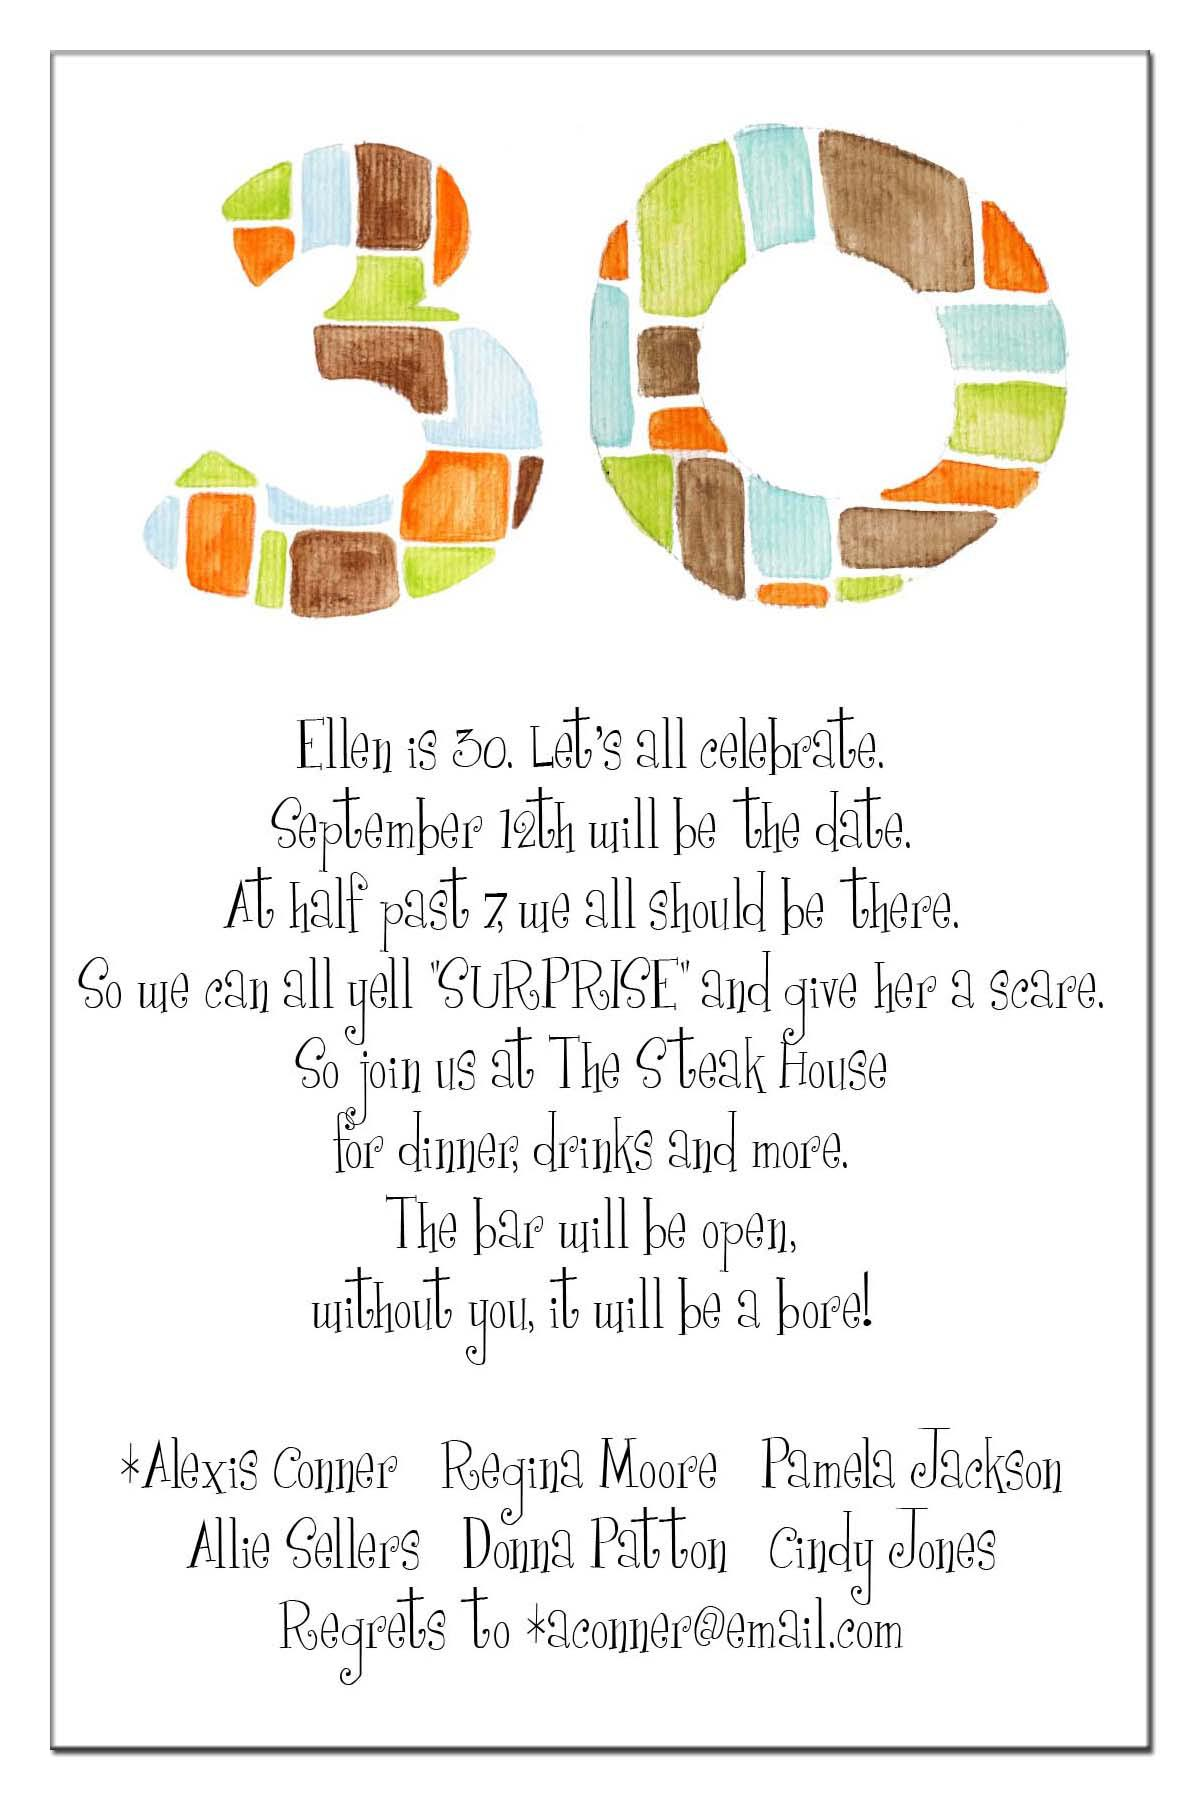 20th birthday invitation quotes ; 20Th-Birthday-Invitation-Wording-for-a-comely-birthday-Invitation-design-with-comely-layout-4